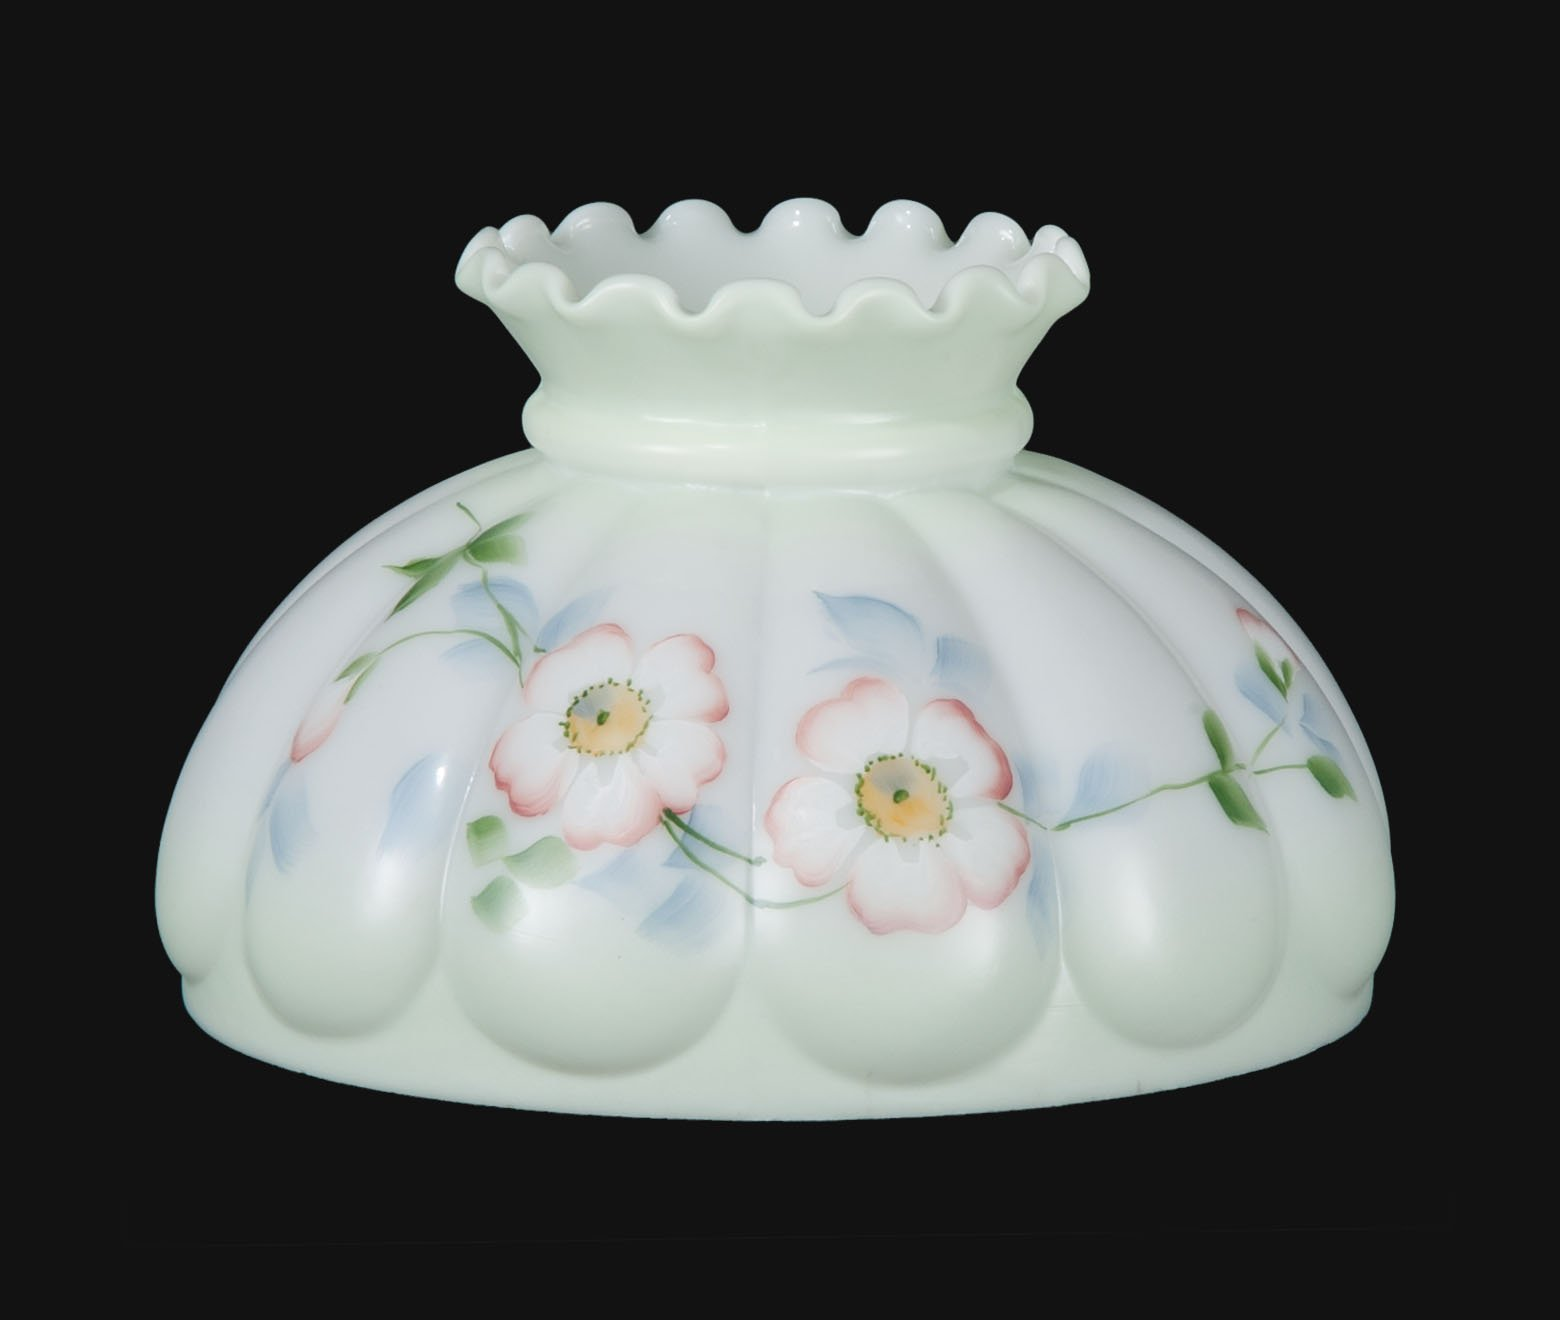 B&P Lamp Opal Melon Shade, Wild Roses Scene by B&P Lamp